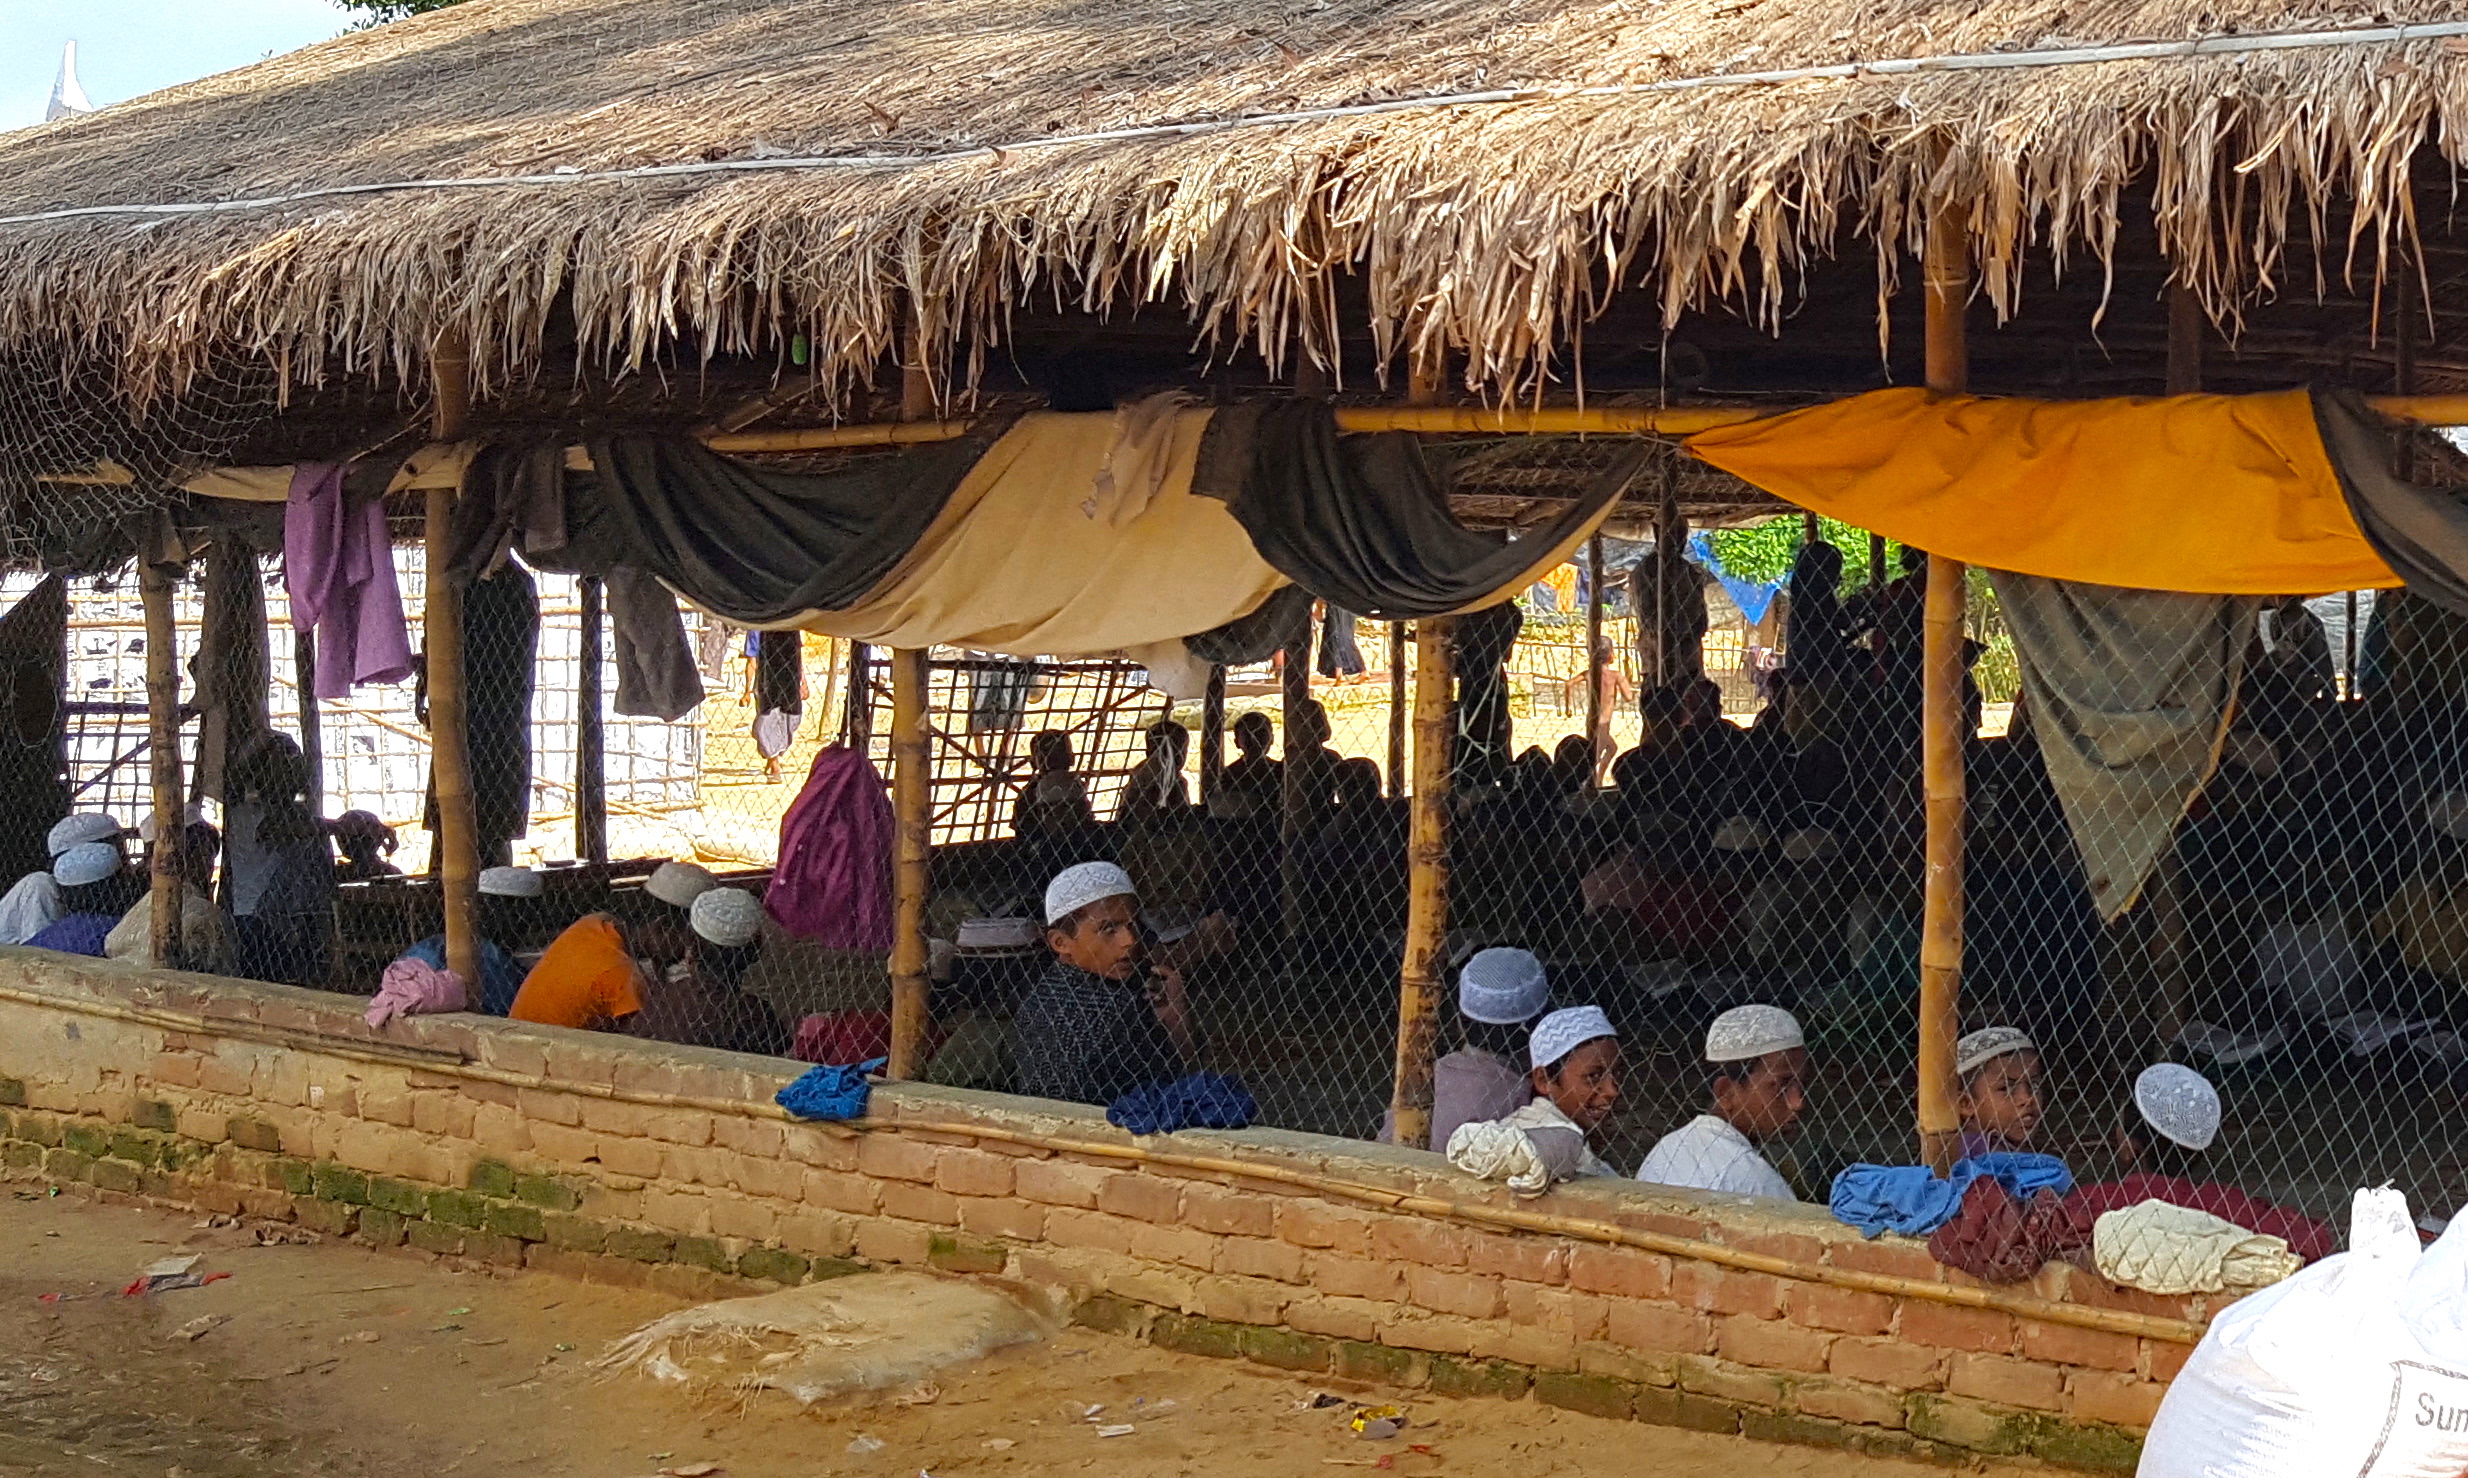 A humanitarian aid organization and Bangladeshi locals set up this  madrassa  for new refugee arrivals. Both locals and refugees take great care of such ad hoc facilities. Although Rohingya refugees are largely illiterate, nearly all can read and recite the Qurʾan.